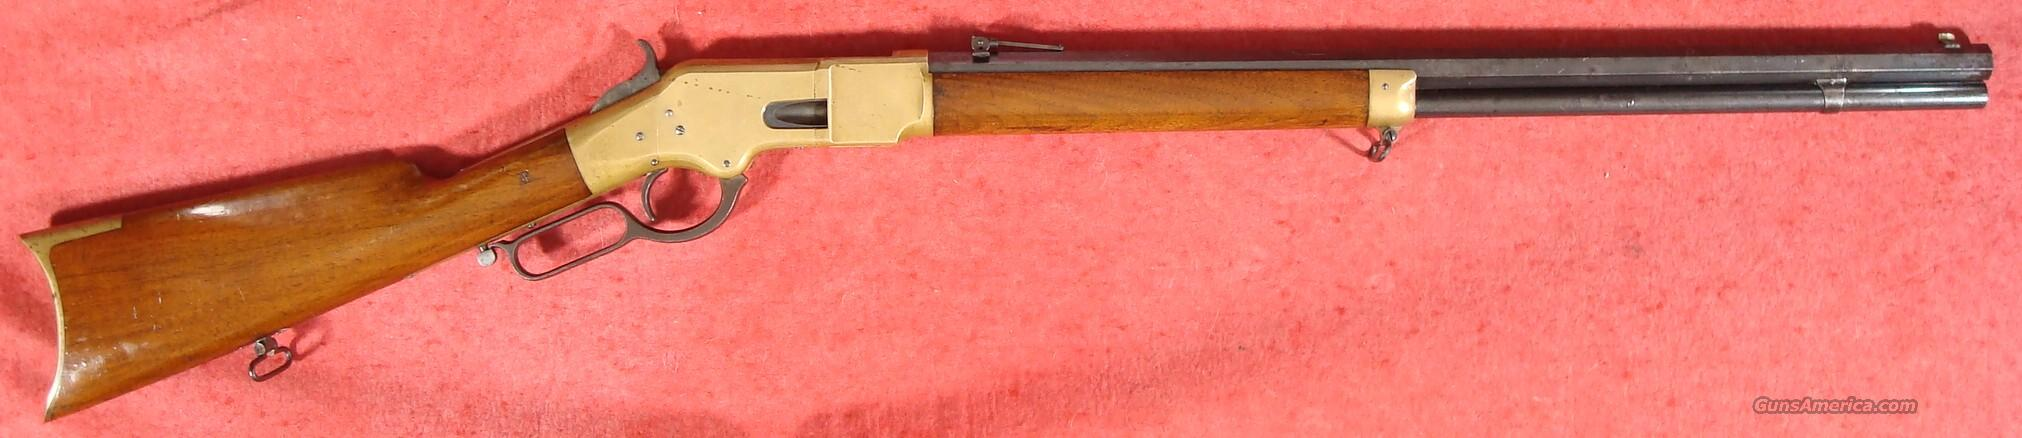 Winchester 1866 Rifle .44 RF Henry marked  Guns > Rifles > Winchester Rifles - Pre-1899 Lever